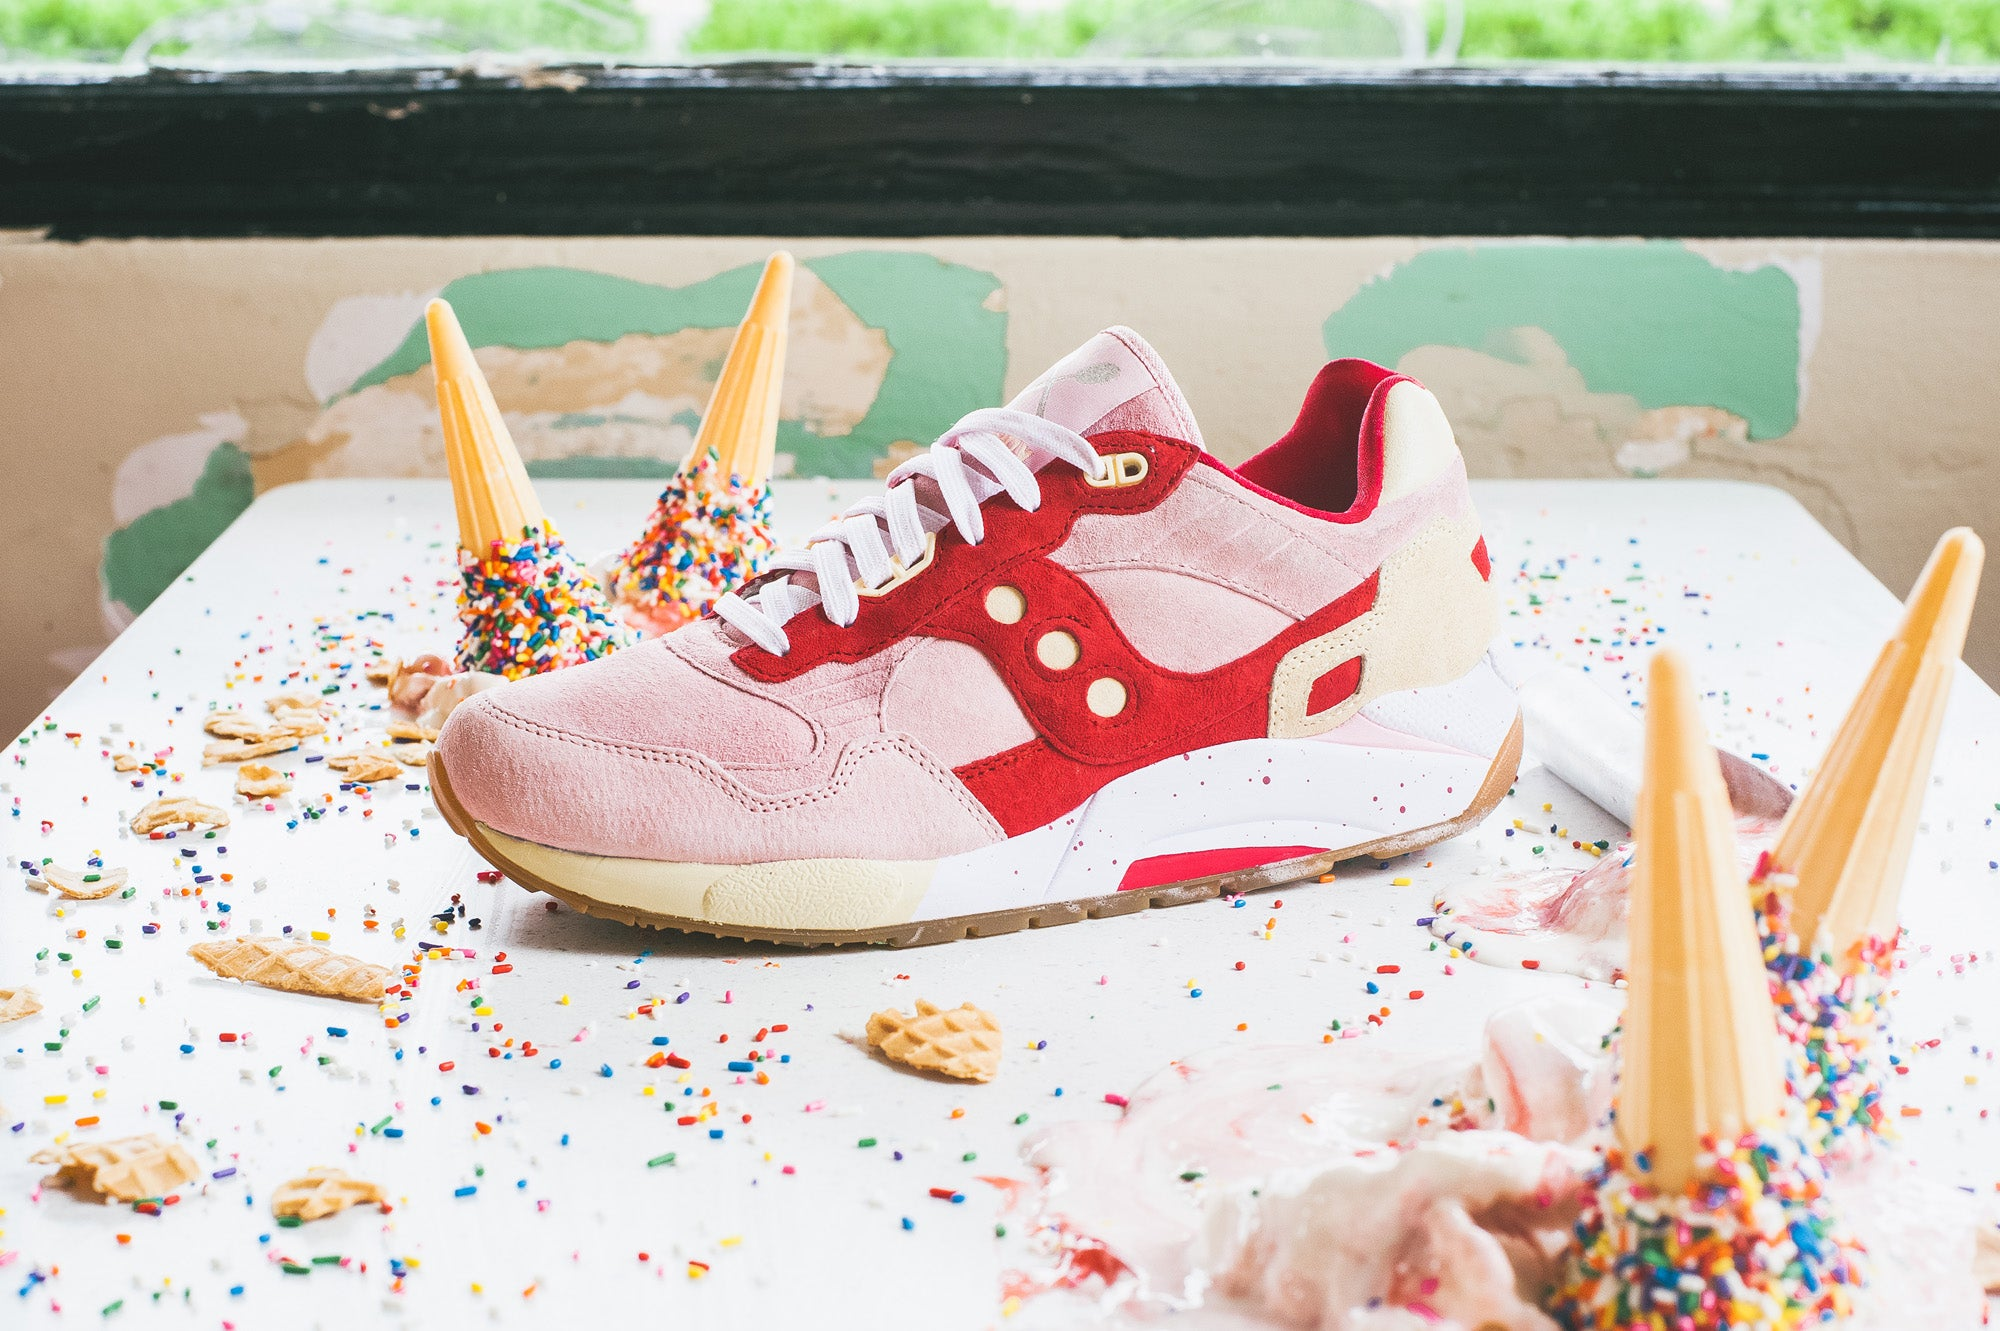 Saucony Originals Scoops Pack Dustin Guidry Photography 47